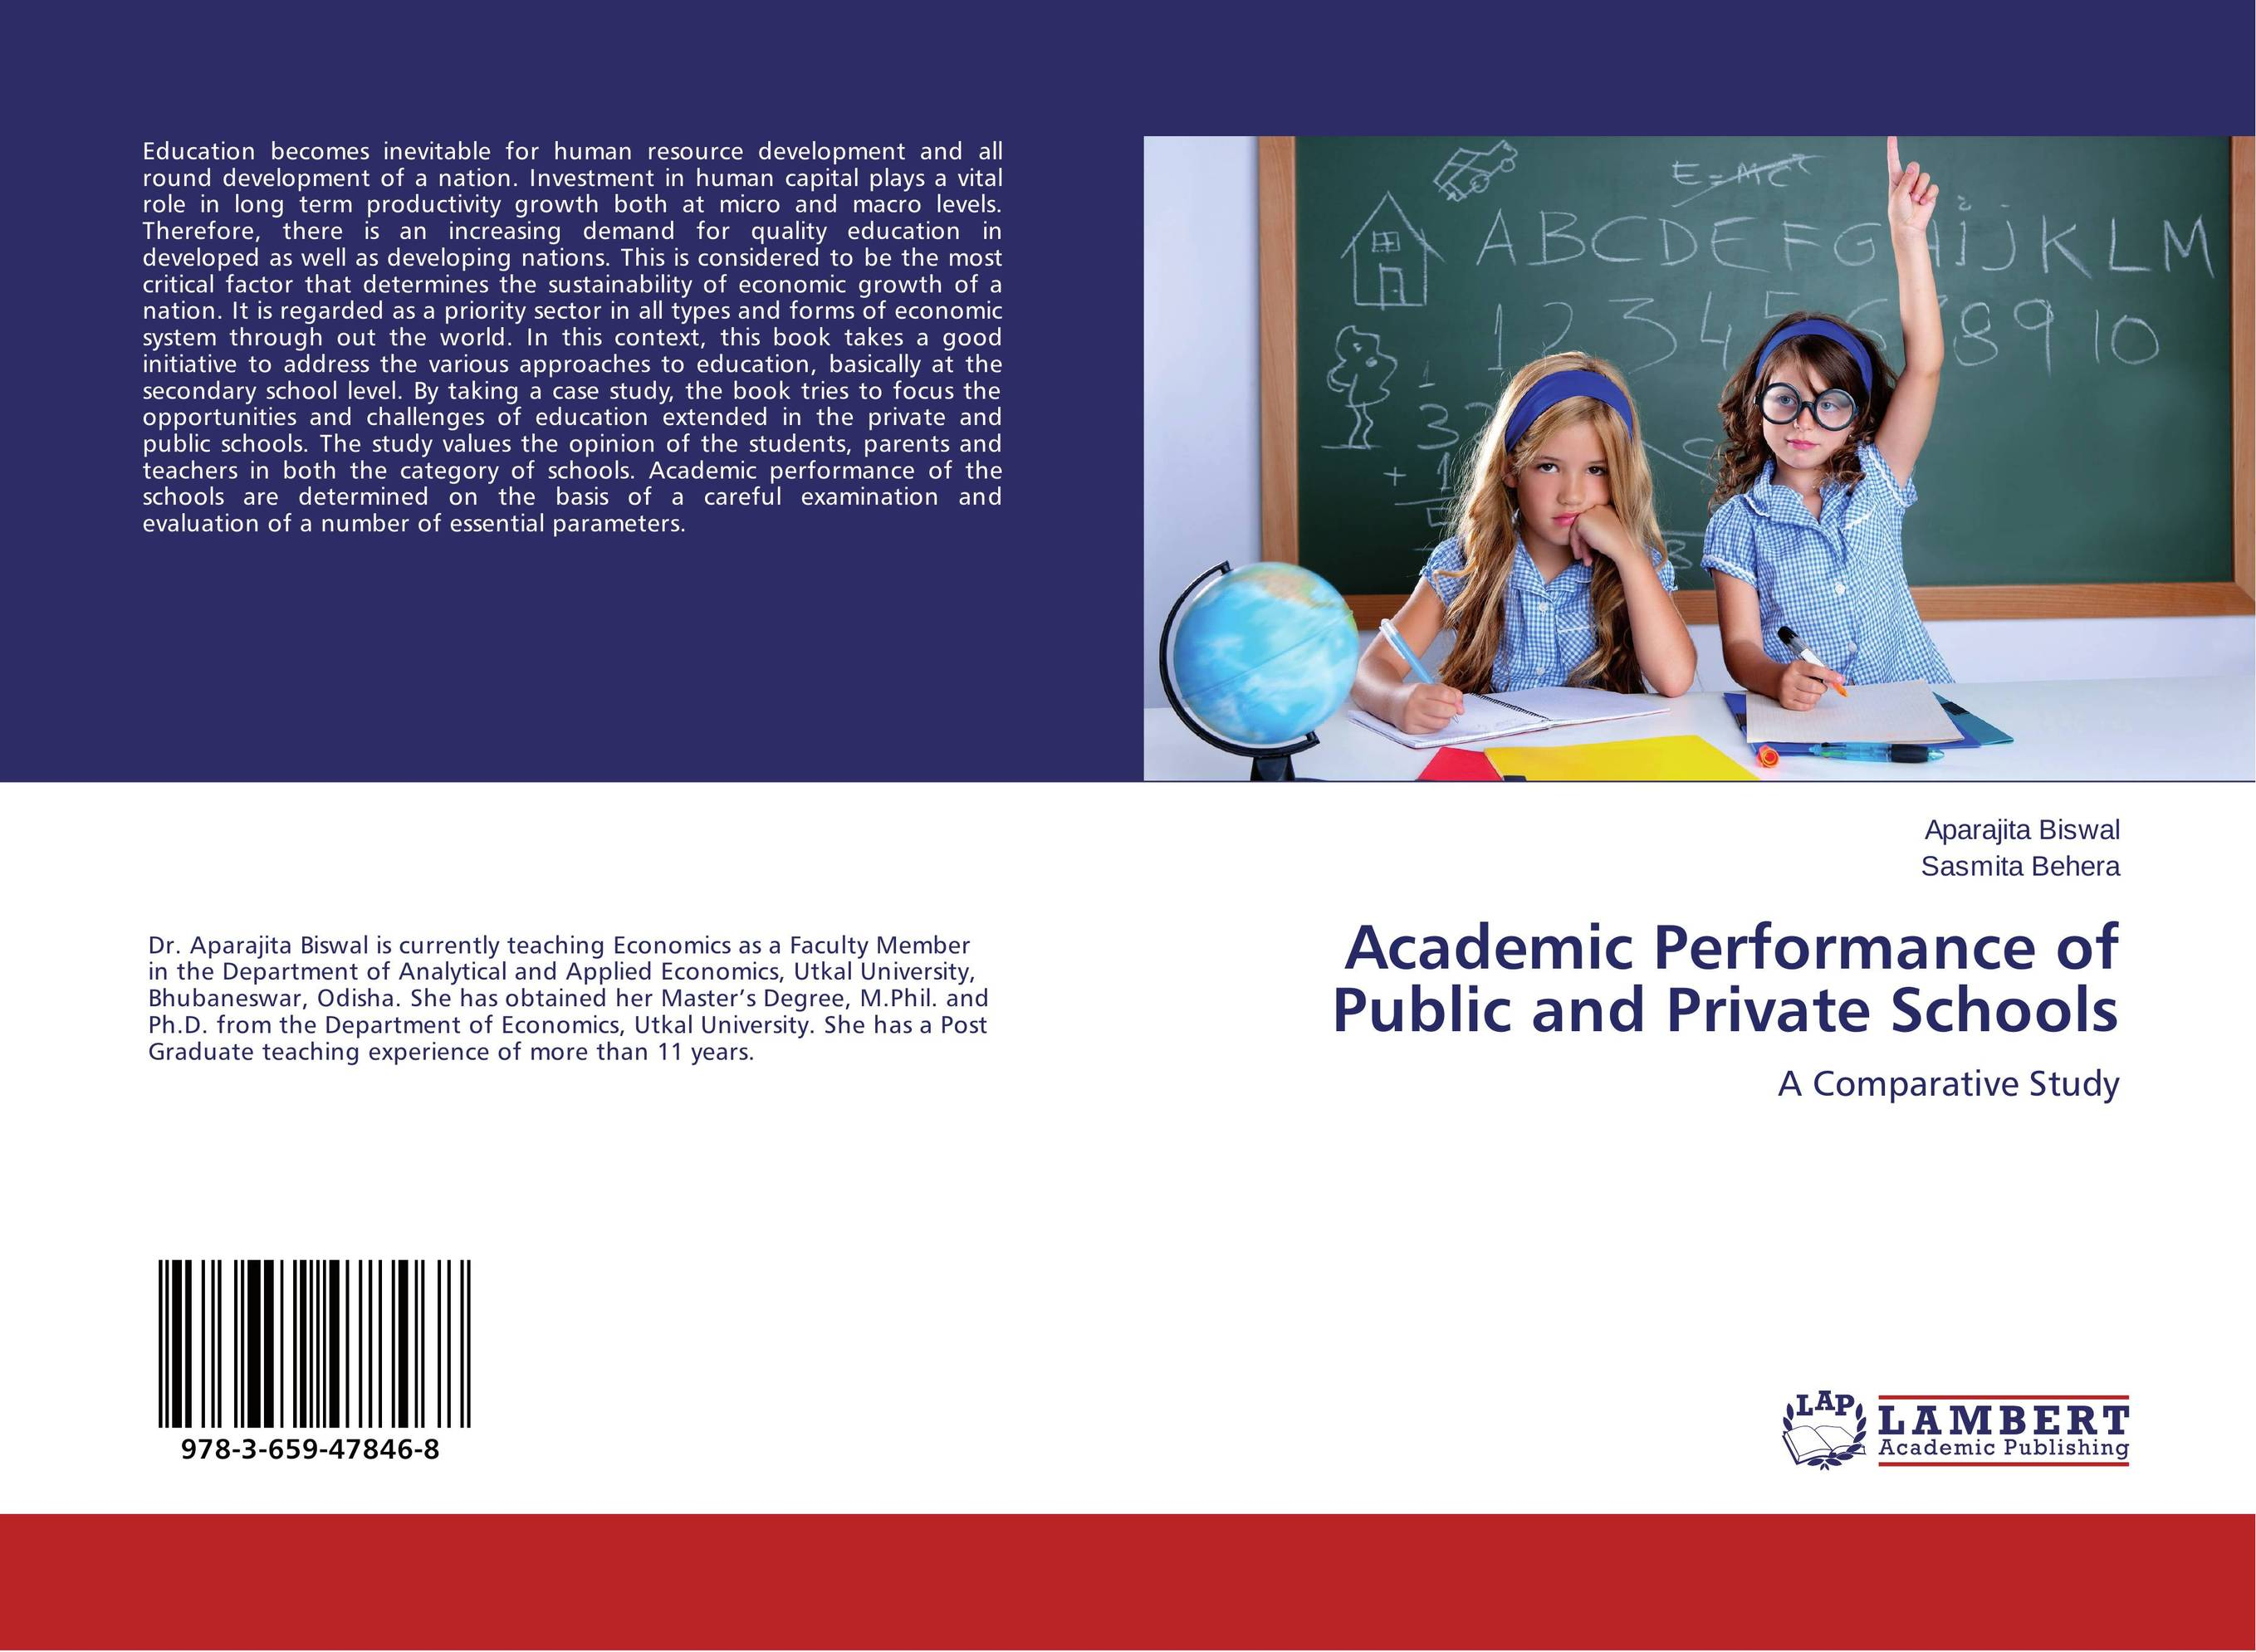 Academic Performance of Public and Private Schools the role of evaluation as a mechanism for advancing principal practice